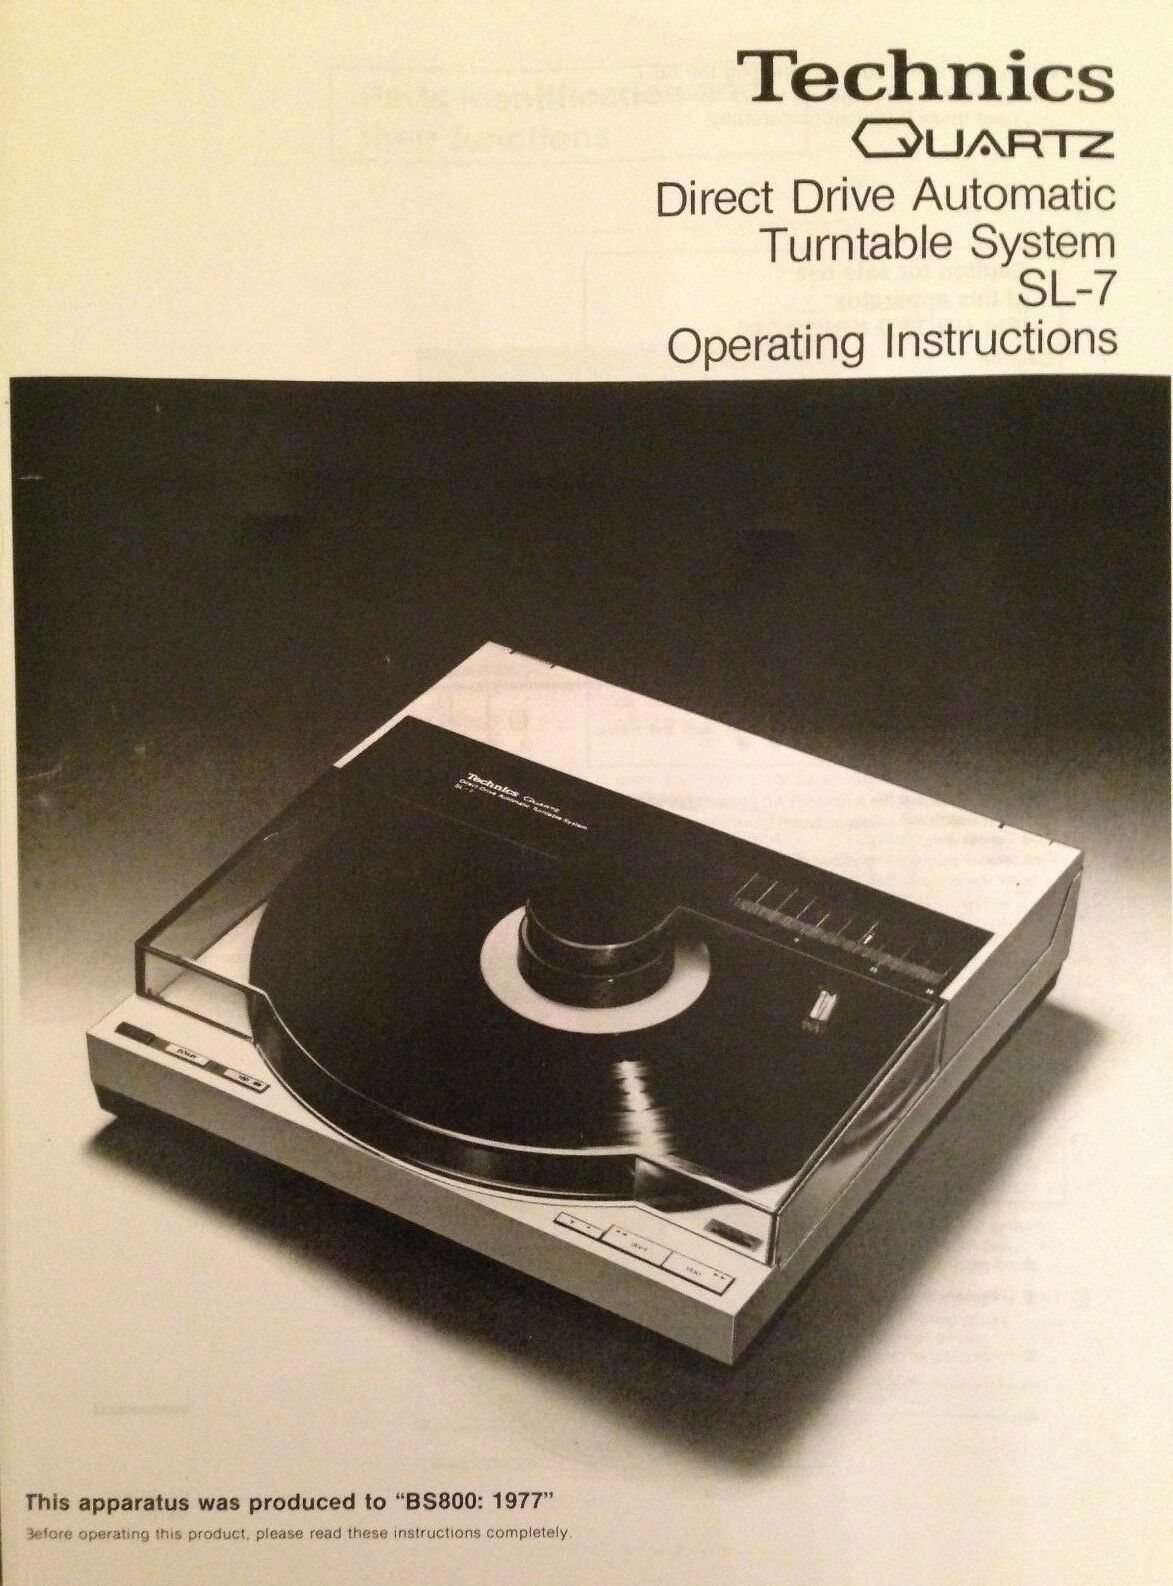 Technics Turntable System SL-7 Operating Instruction - USER MANUAL - Hifi  VINYL 1 of 2FREE Shipping See More